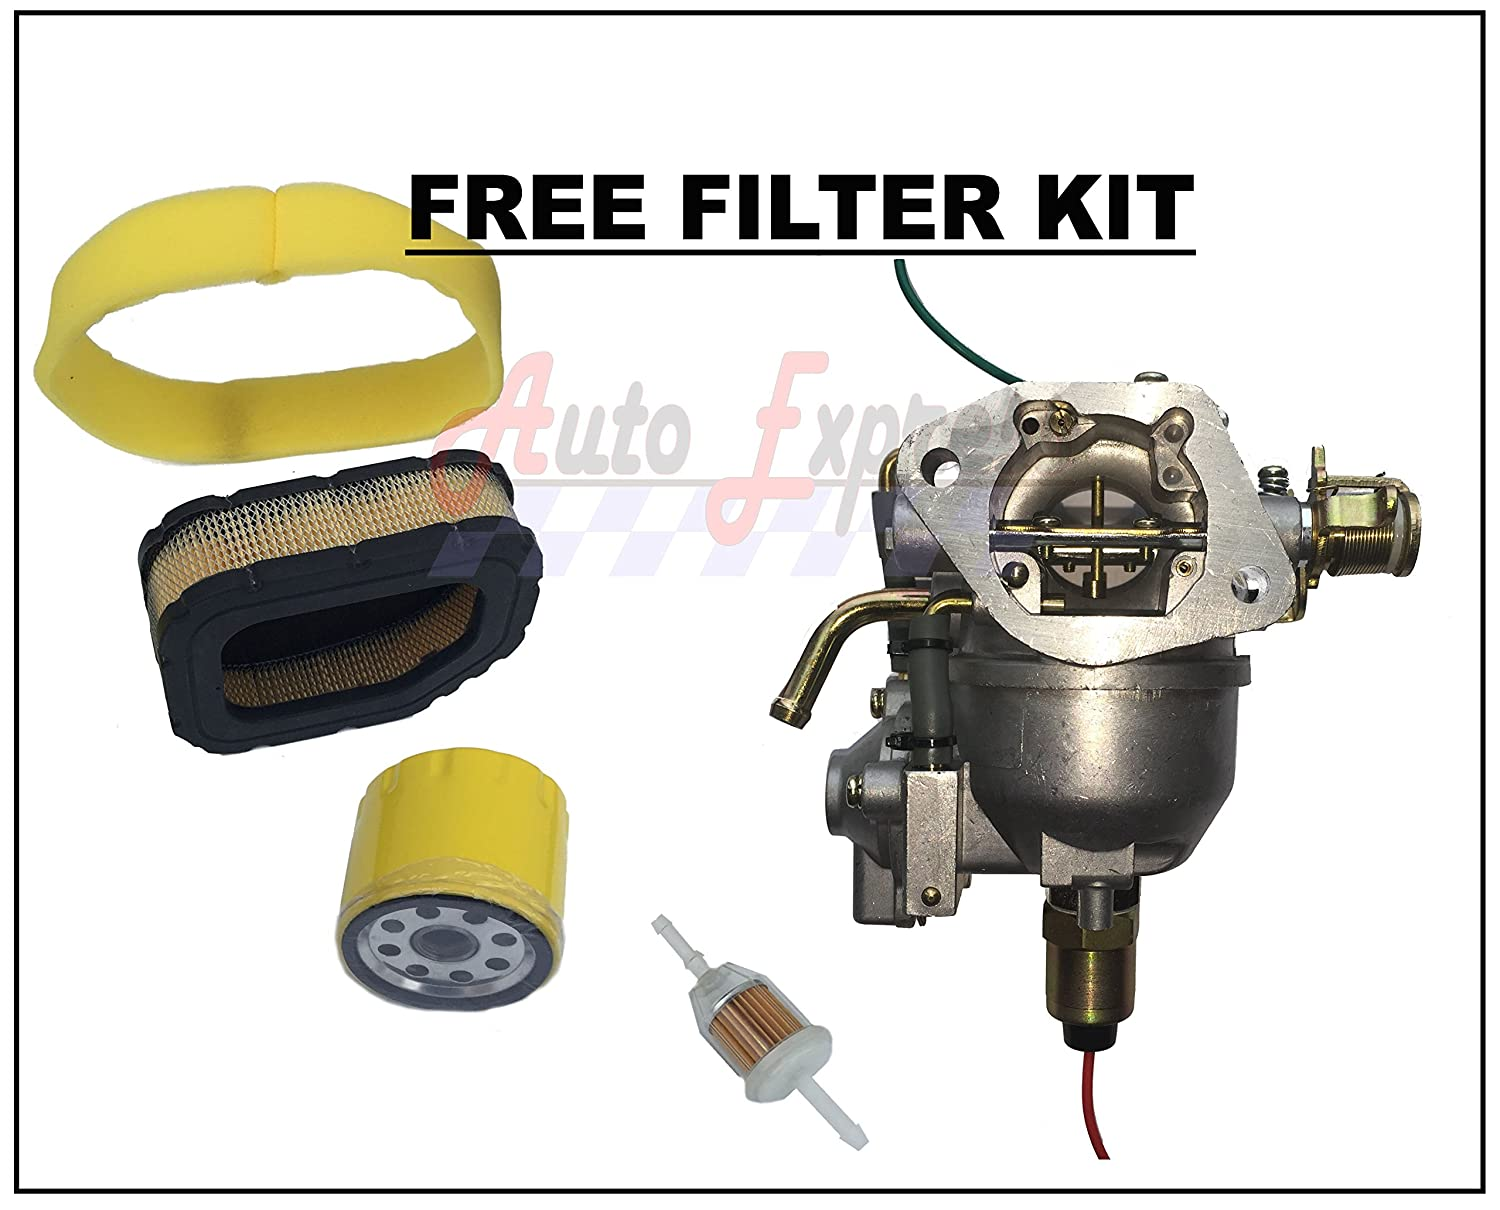 81WCl4RjBsL._SL1500_ amazon com carburetor fits john deere m655 m665 ztrak carb pump john deere m655 parts diagram at webbmarketing.co